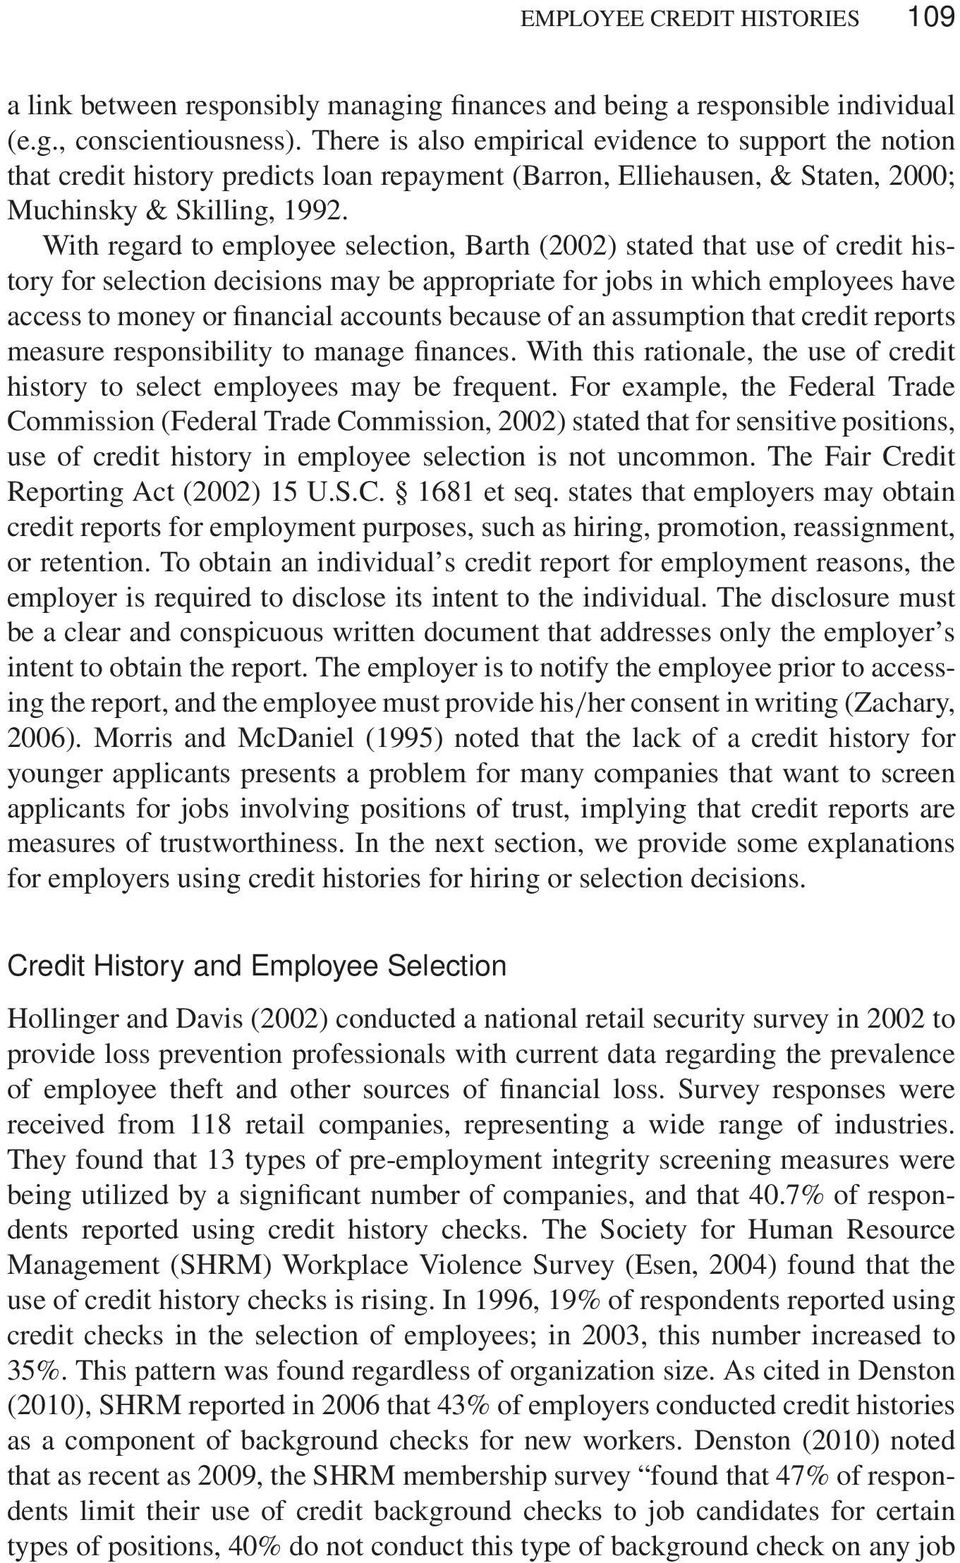 With regard to employee selection, Barth (2002) stated that use of credit history for selection decisions may be appropriate for jobs in which employees have access to money or financial accounts